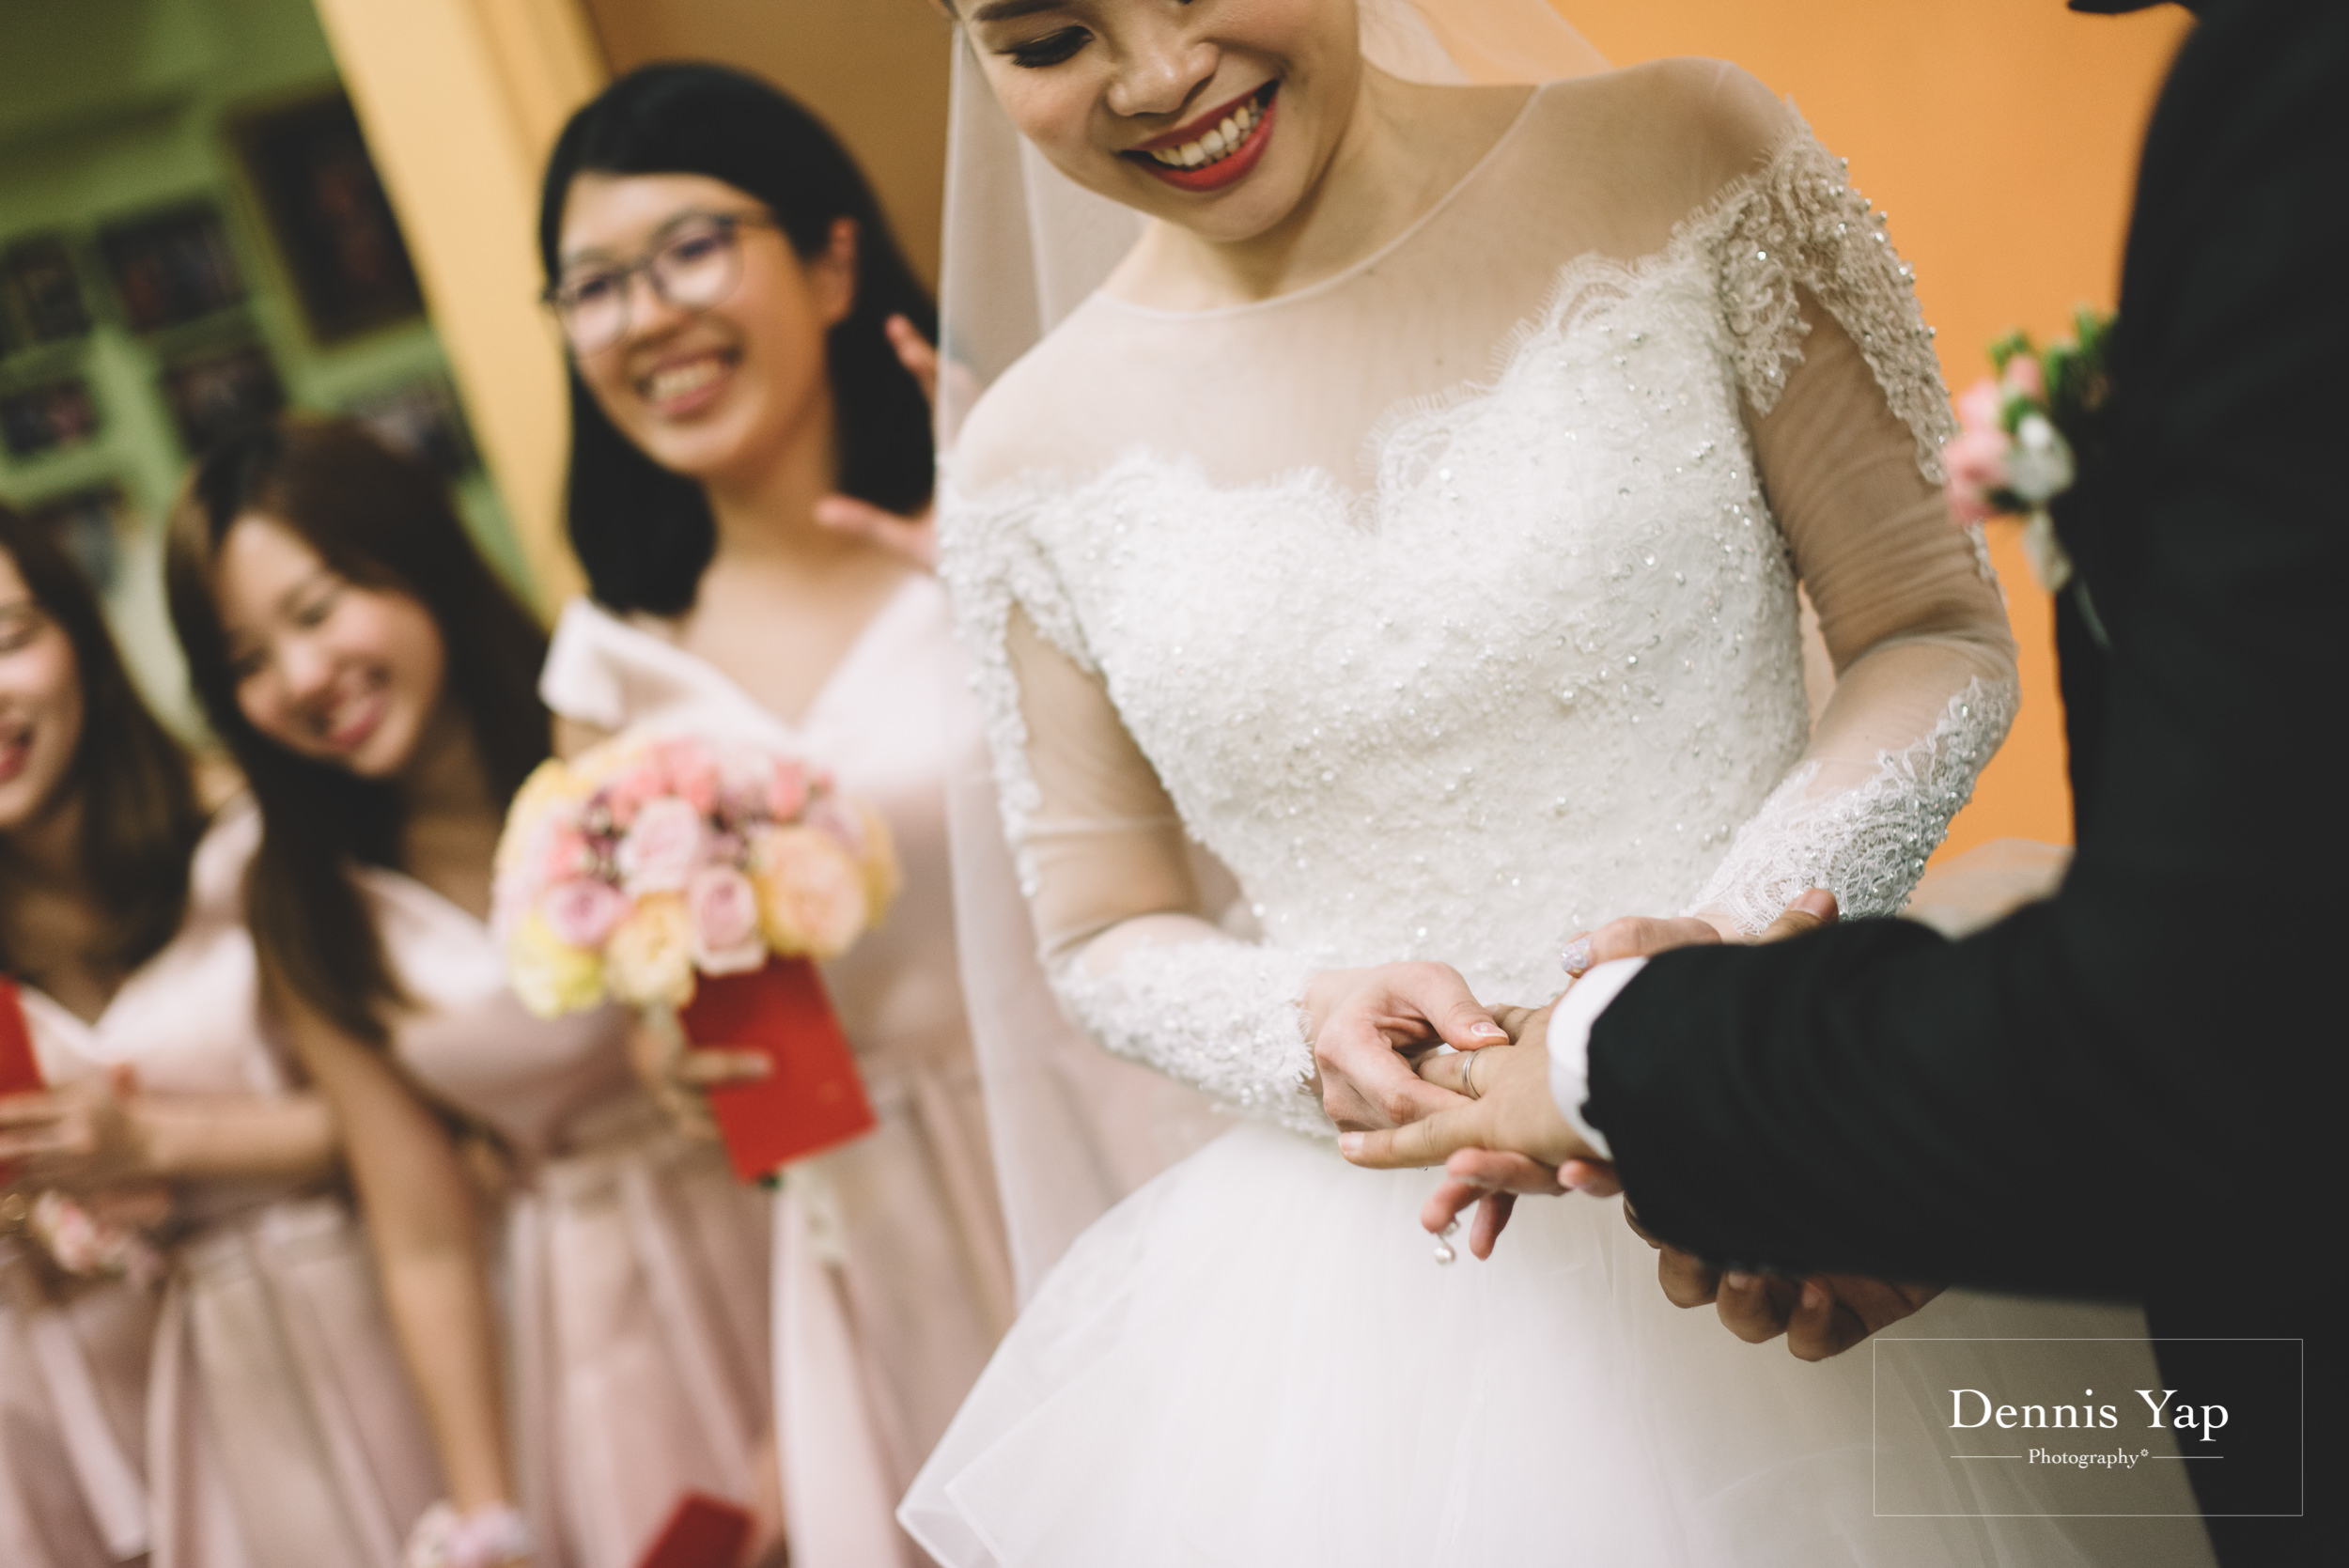 marcus emily wedding day gift exchange malaysia dennis yap photography-9.jpg